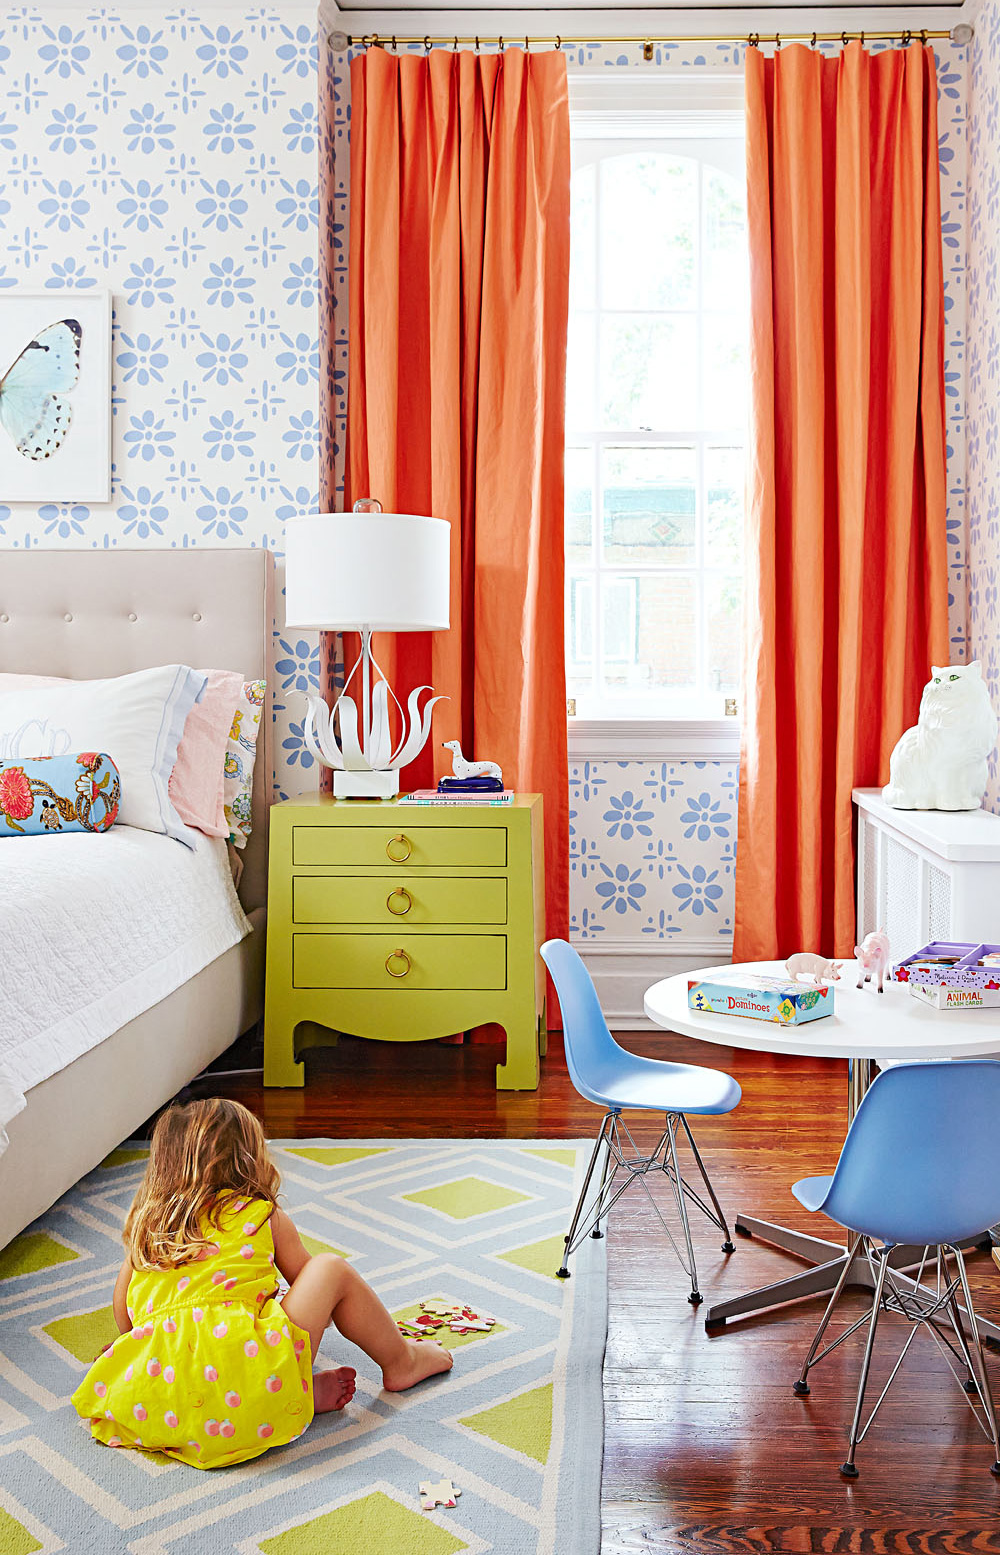 Plan ahead for kids' rooms